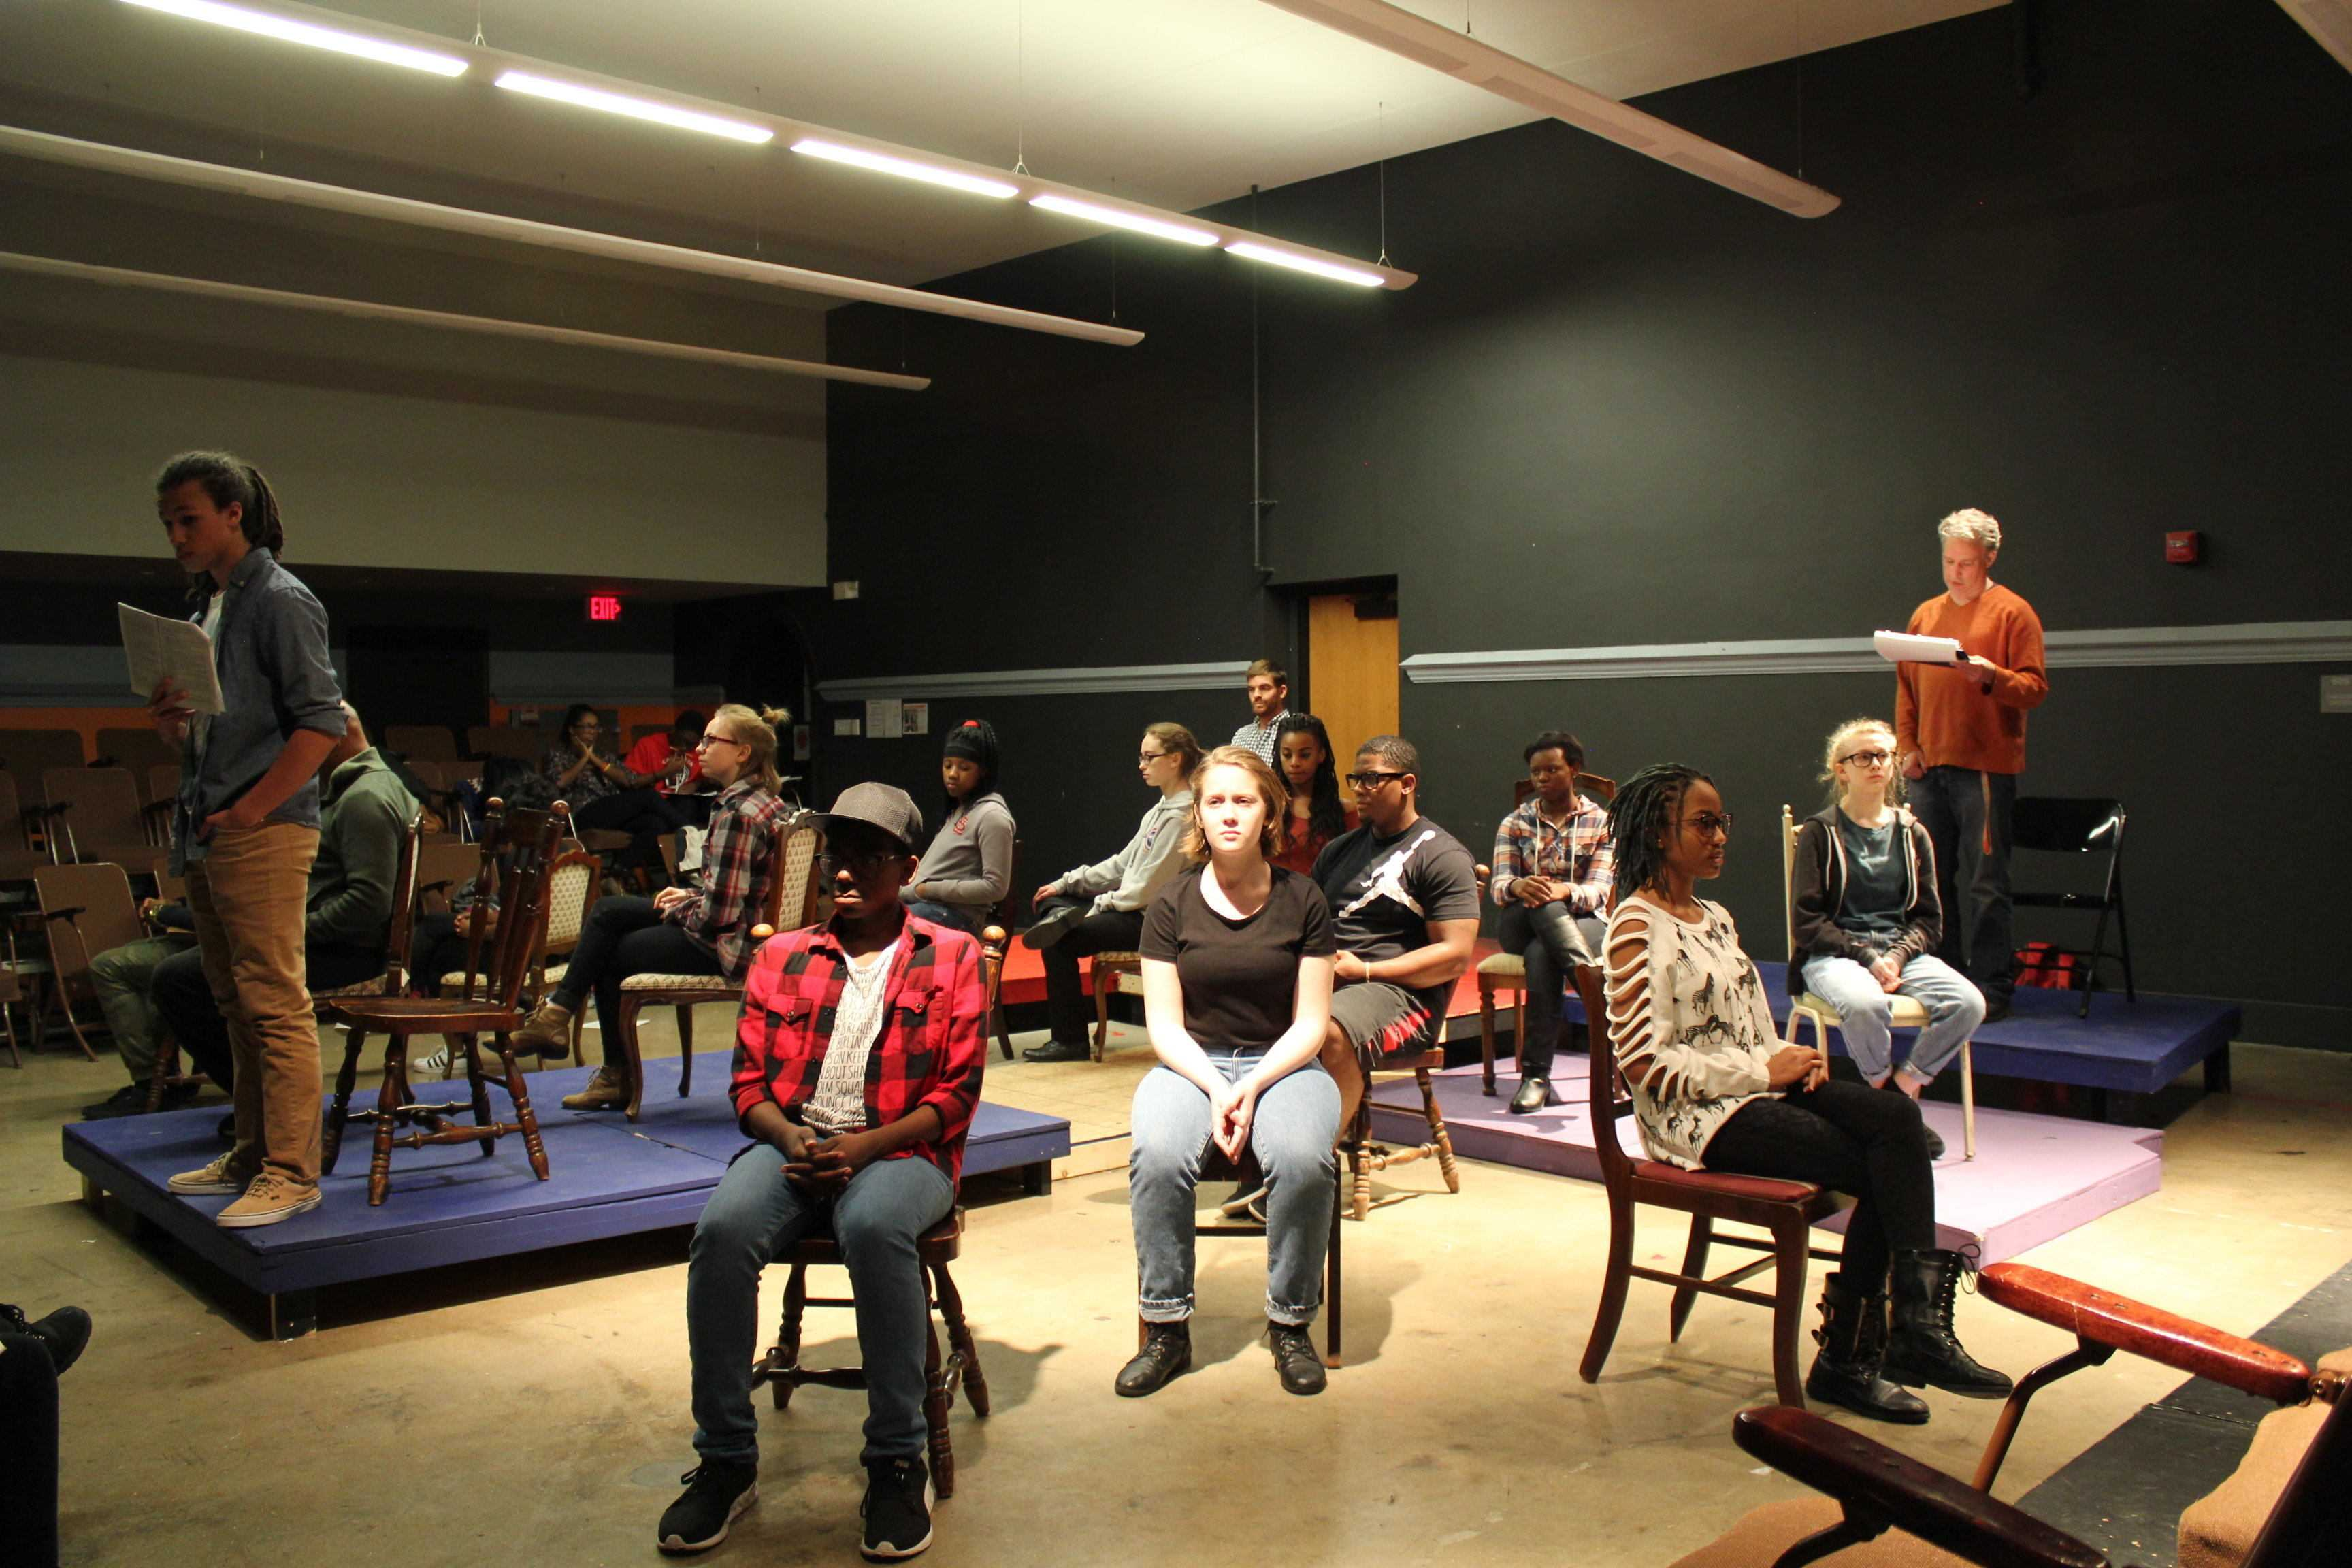 The cast rehearses a scene from the final act of The Laramie Project.